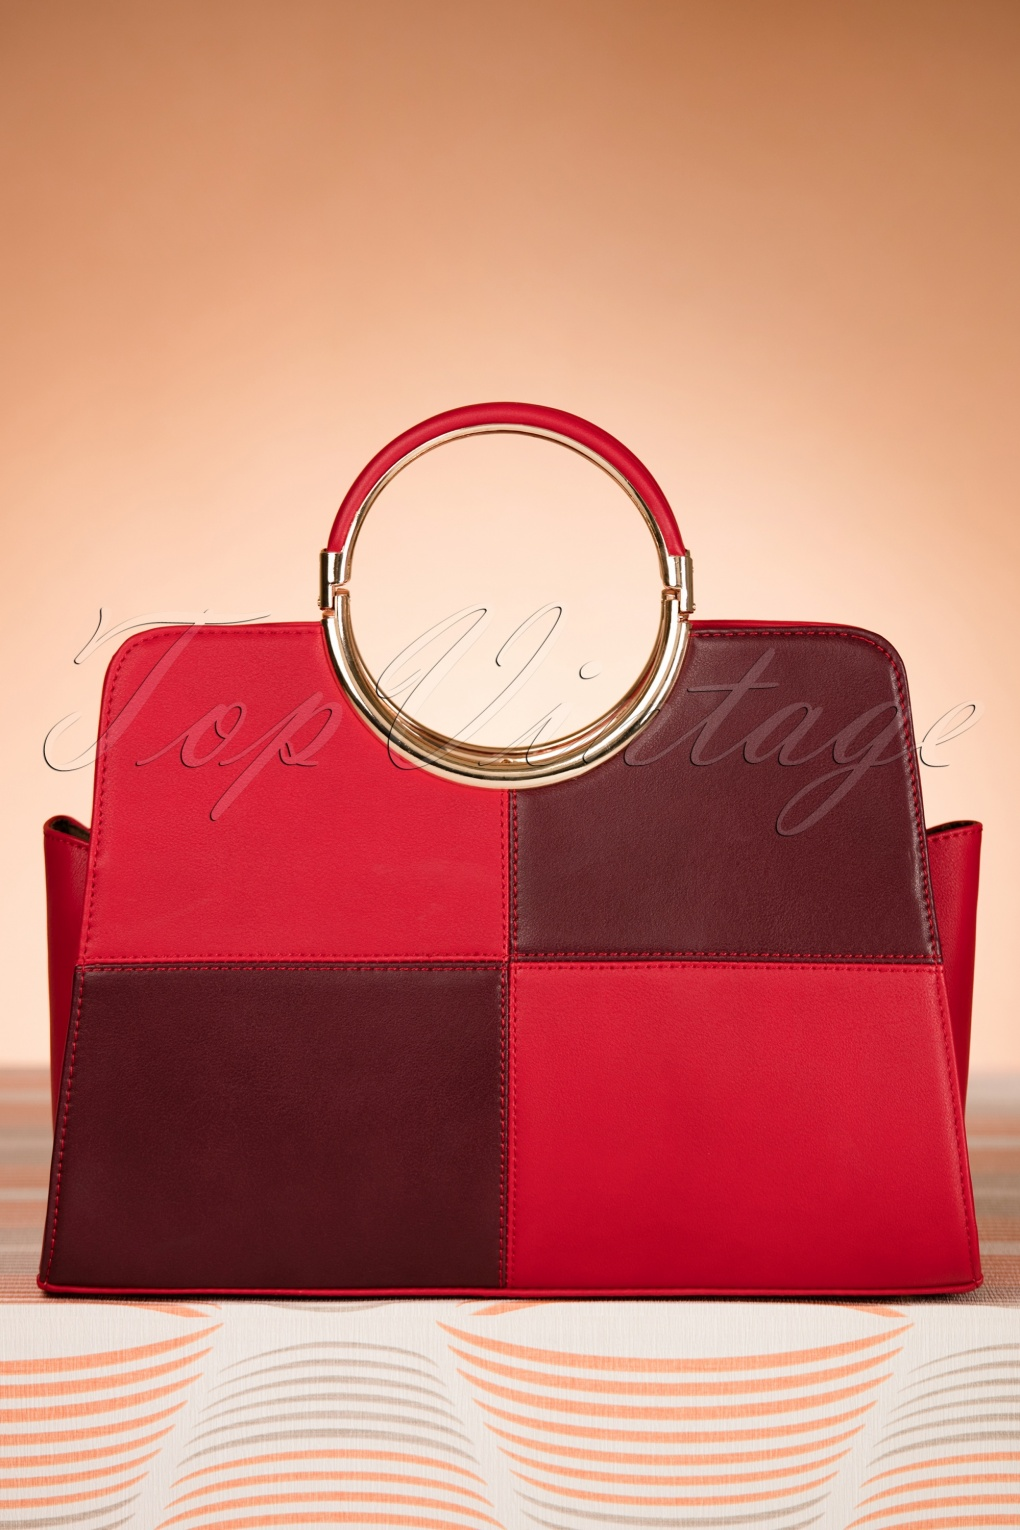 Retro Handbags, Purses, Wallets, Bags 60s Pia Top Handle Handbag in Red and Aubergine £39.39 AT vintagedancer.com